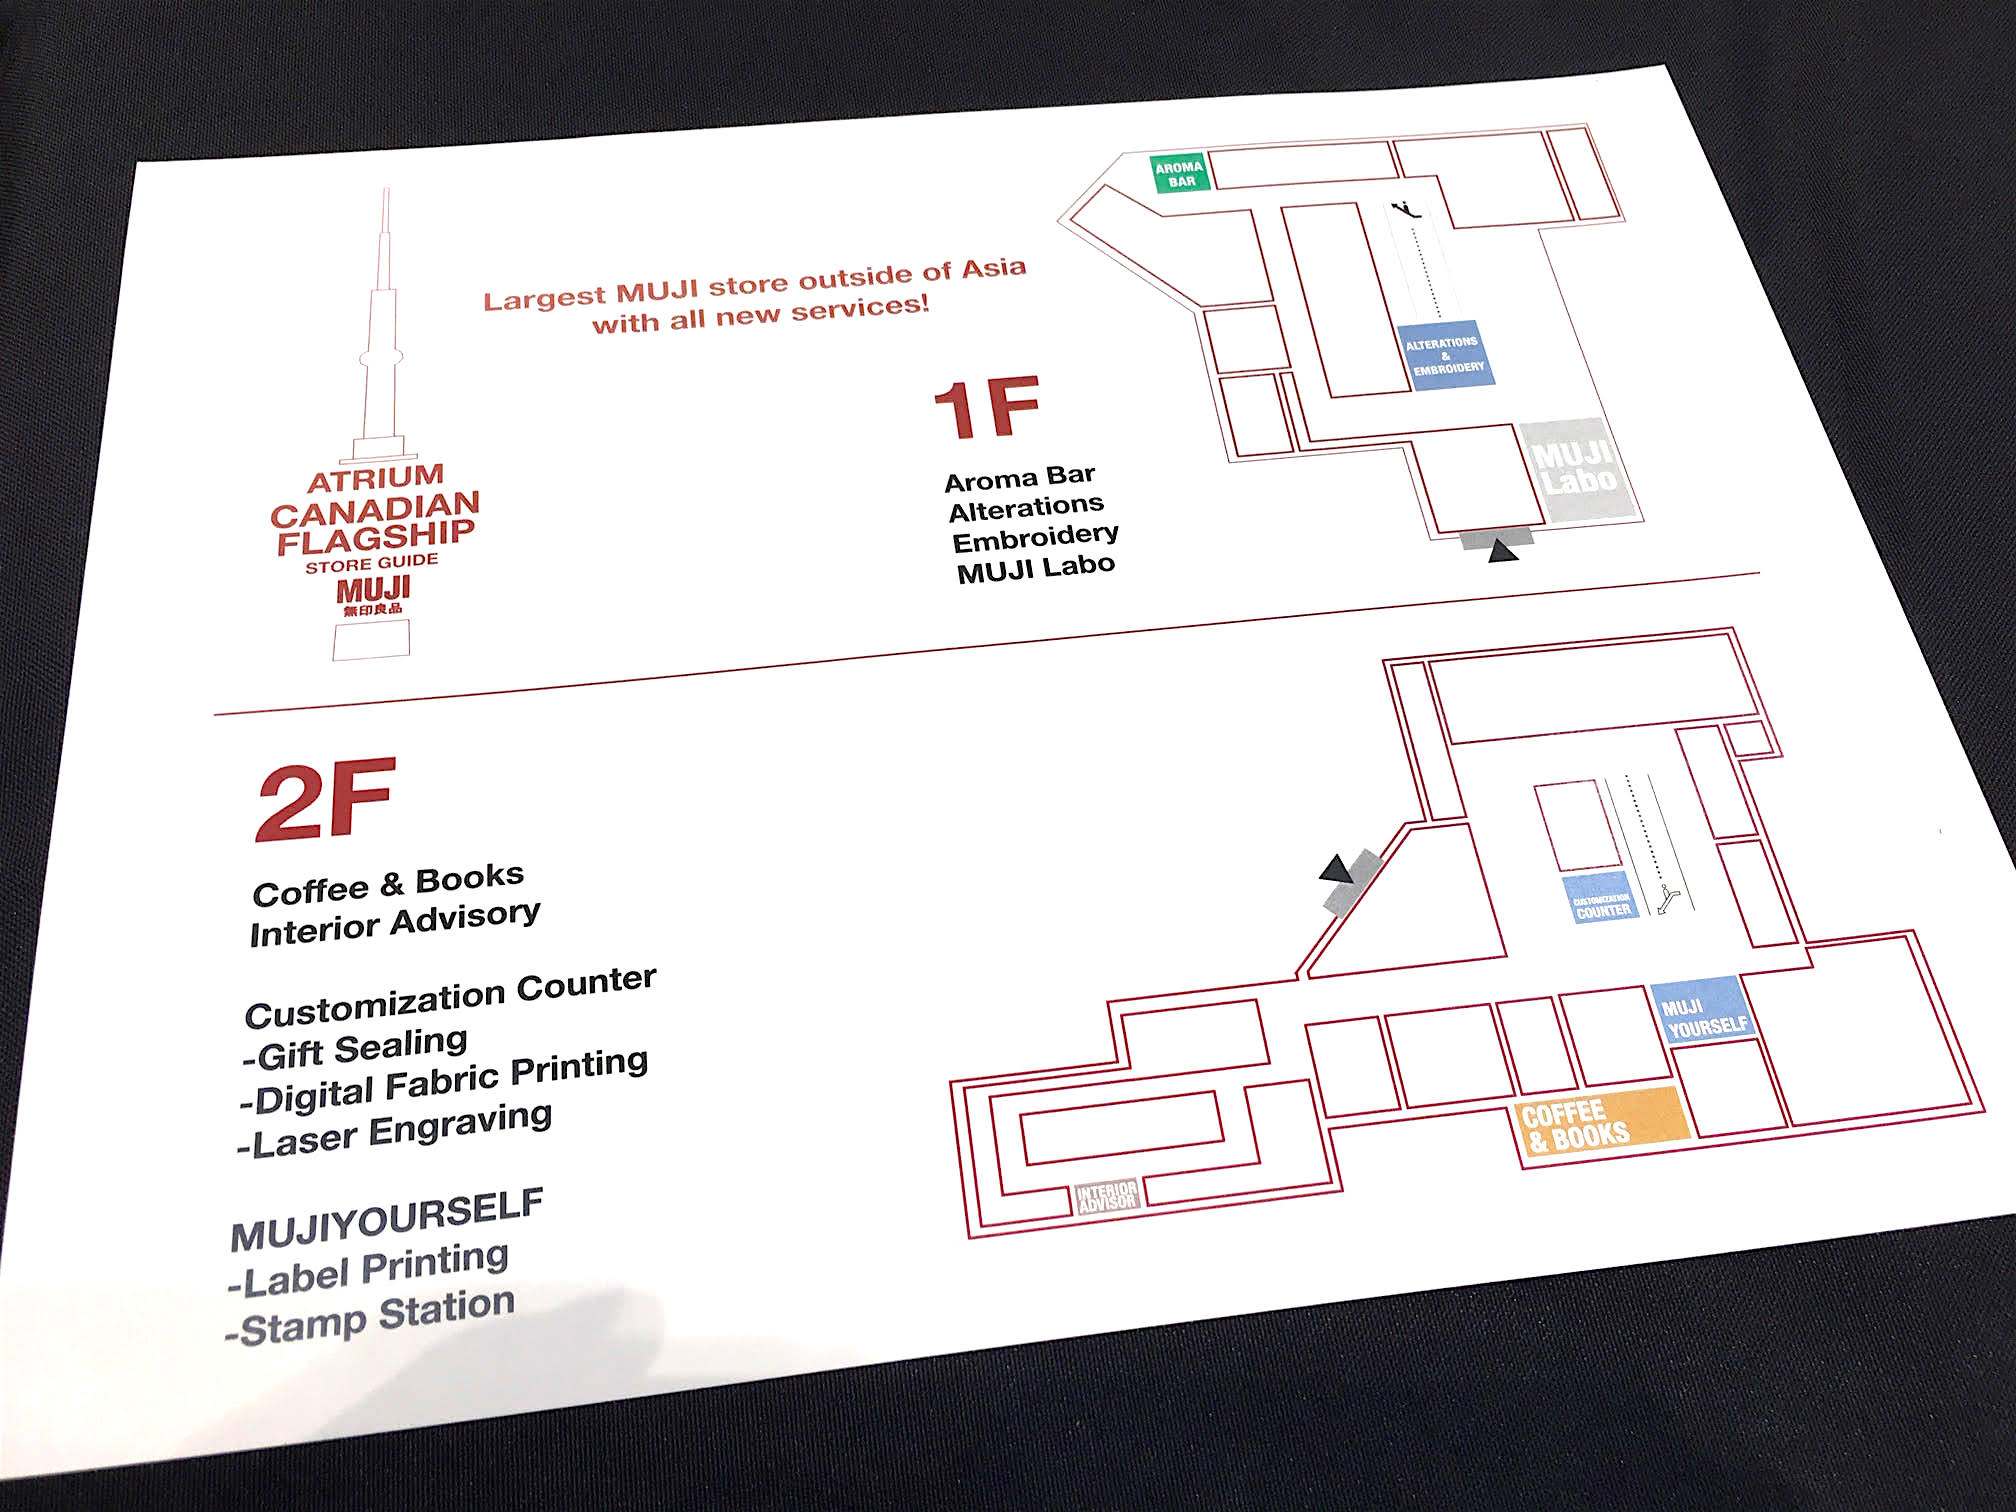 PHotograph of a store floor plan handed out to guests at the Media grand opening on Thursday, November 22. Photo: Craig Patterson